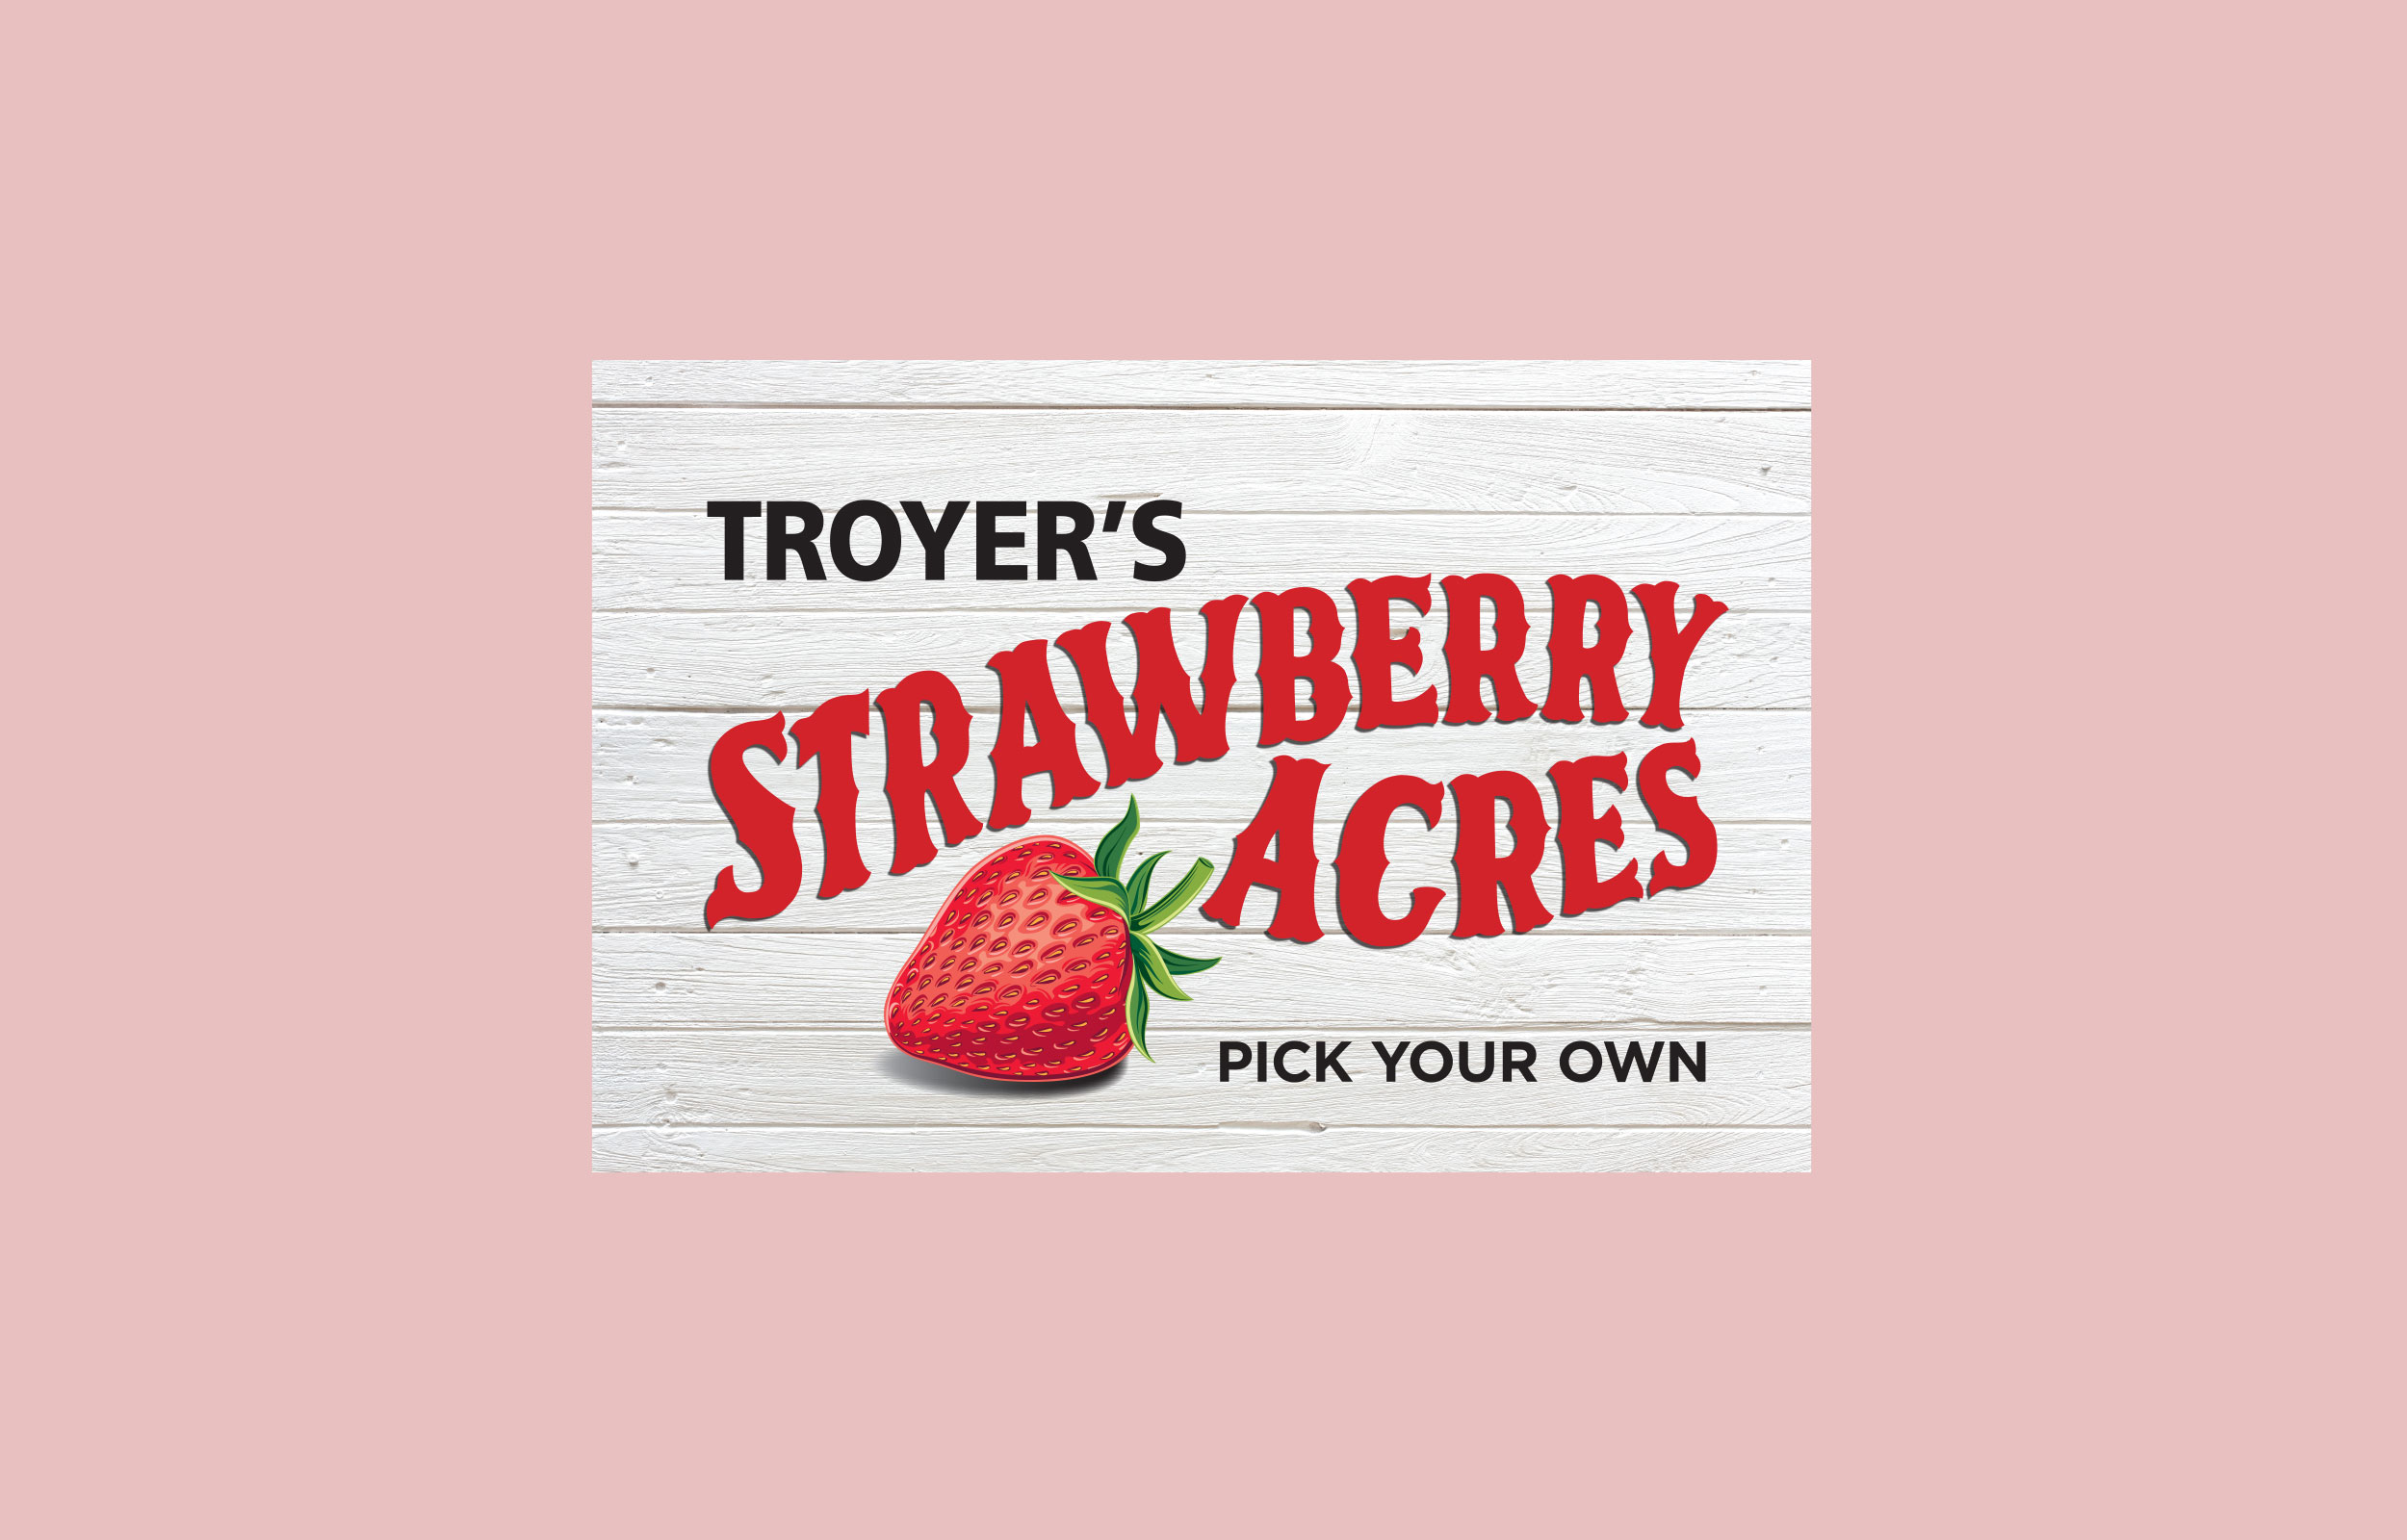 http://papaadvertising.com/wp-content/uploads/2015/05/Strawberry_sign_1600x25001.jpg